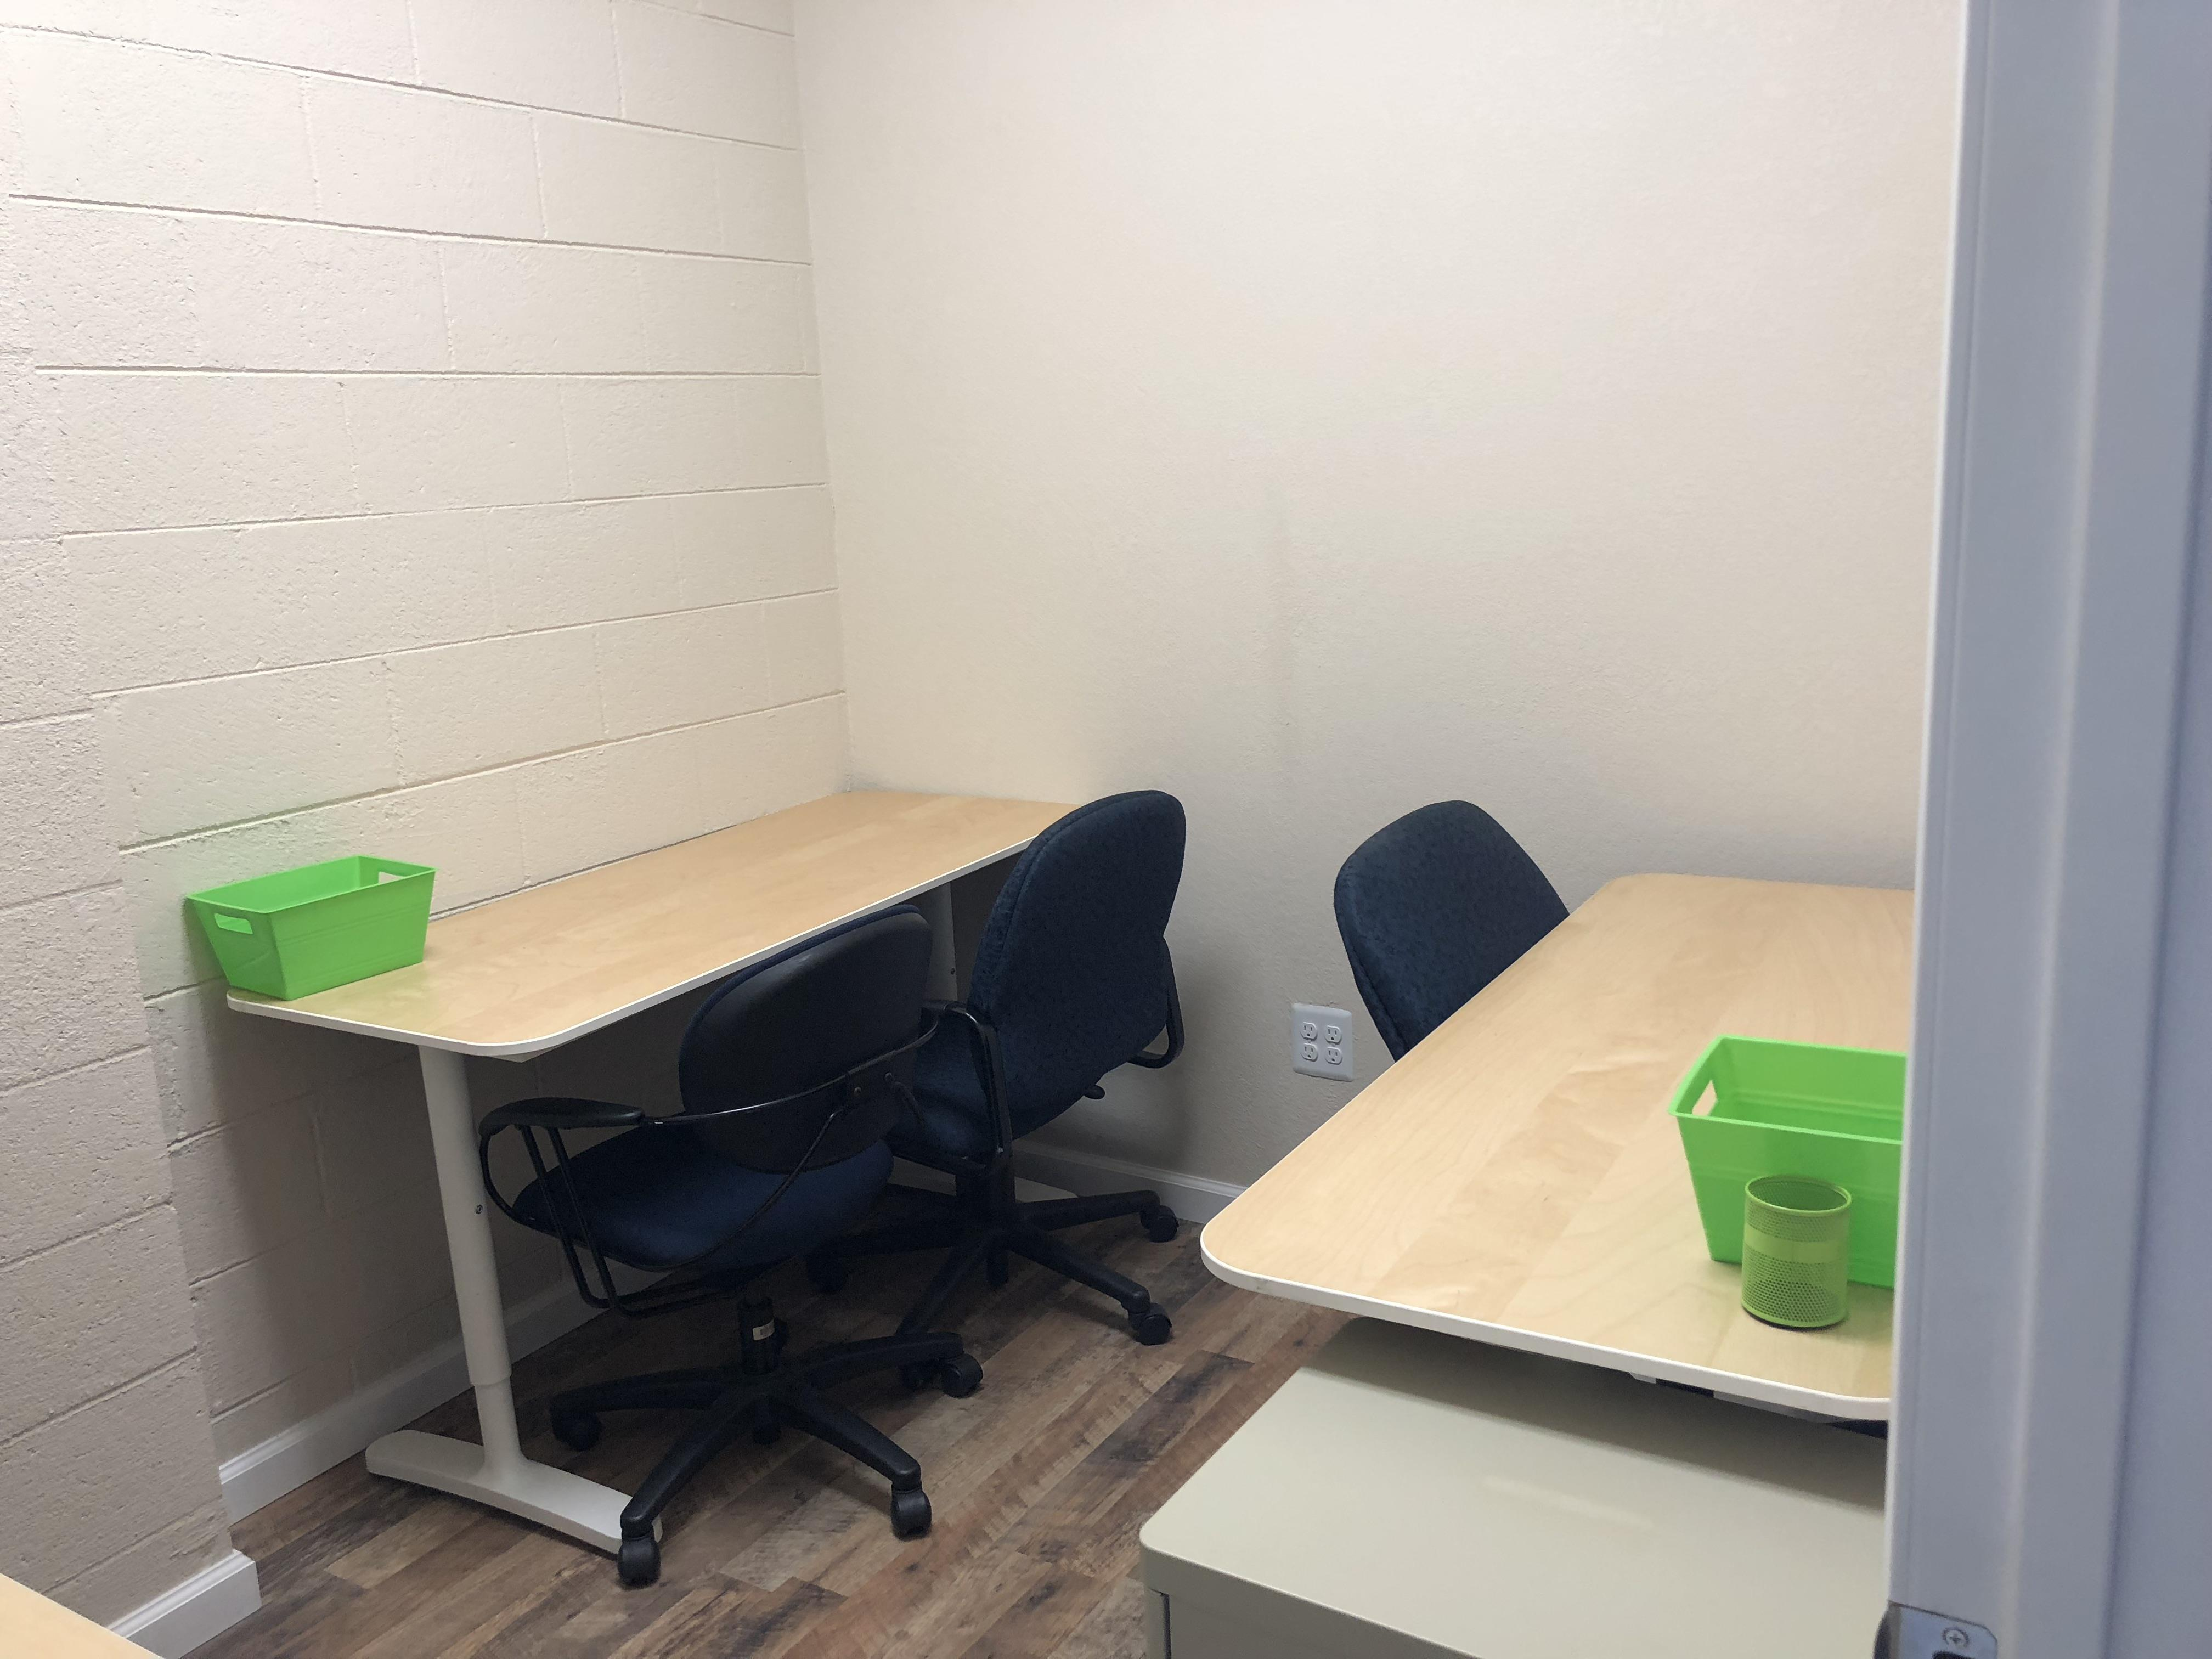 ActionSpot Co-working /Shared Office Space - Suite 104